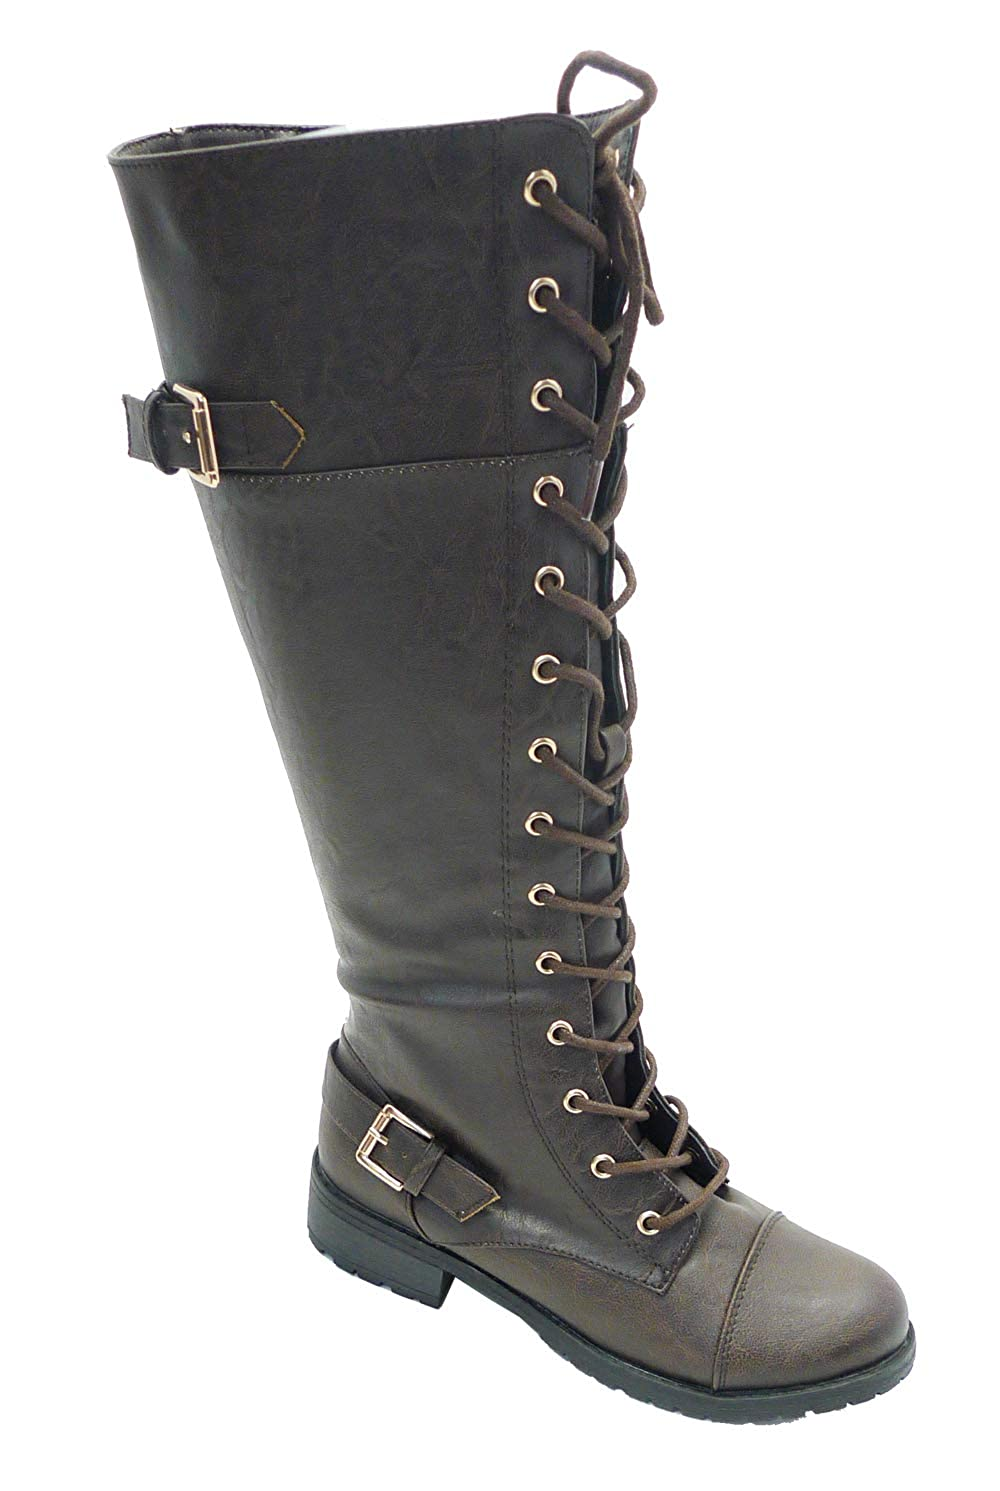 Wild Diva Timberly Womens Fashion Lace Up Buckle Knee High Combat Boots